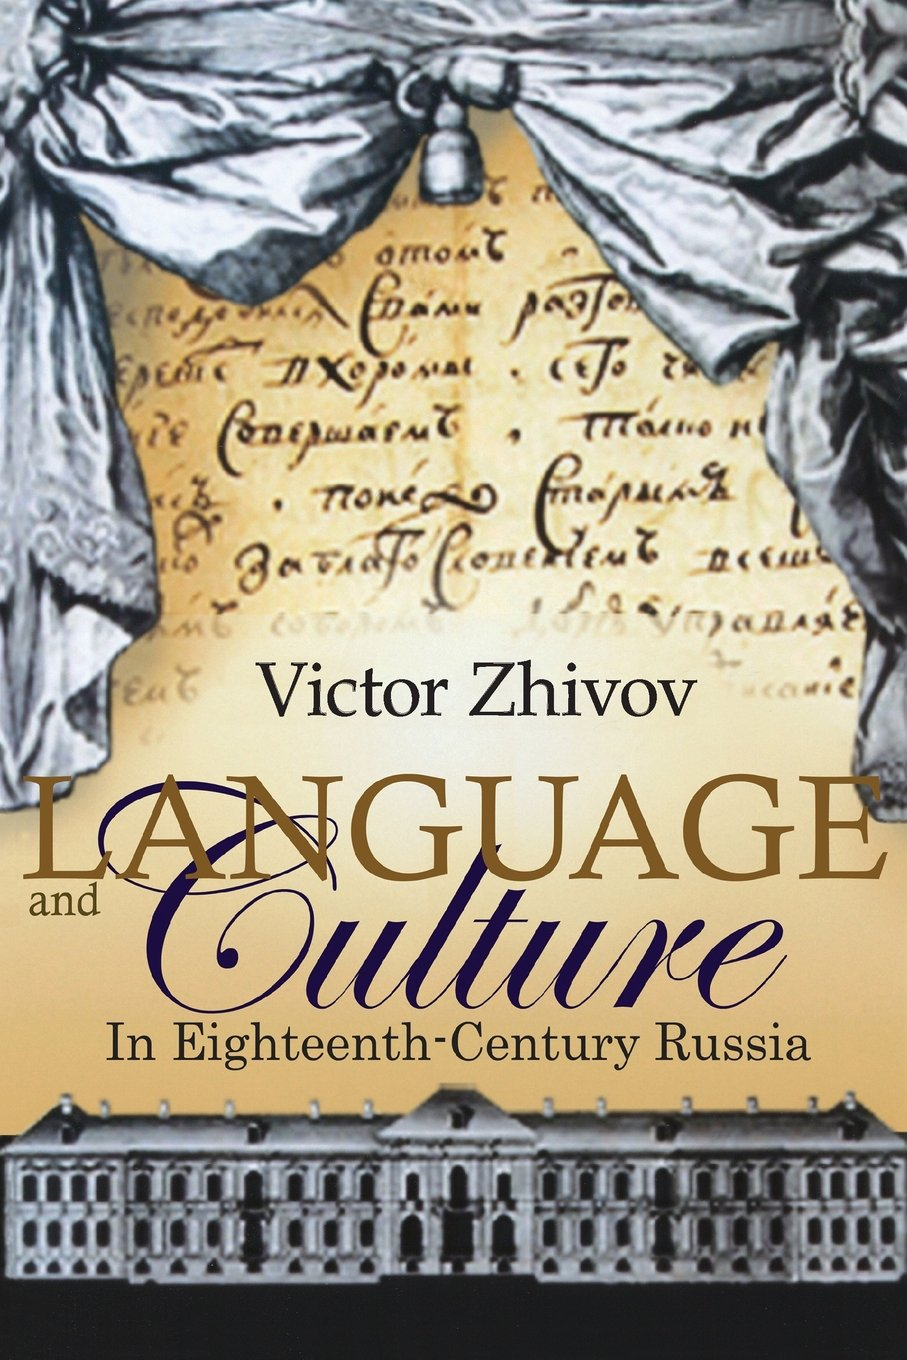 Language and Culture in Eighteenth-Century Russia (Studies in Russian and Slavic Literatures, Cultures, and History) by Academic Studies Press